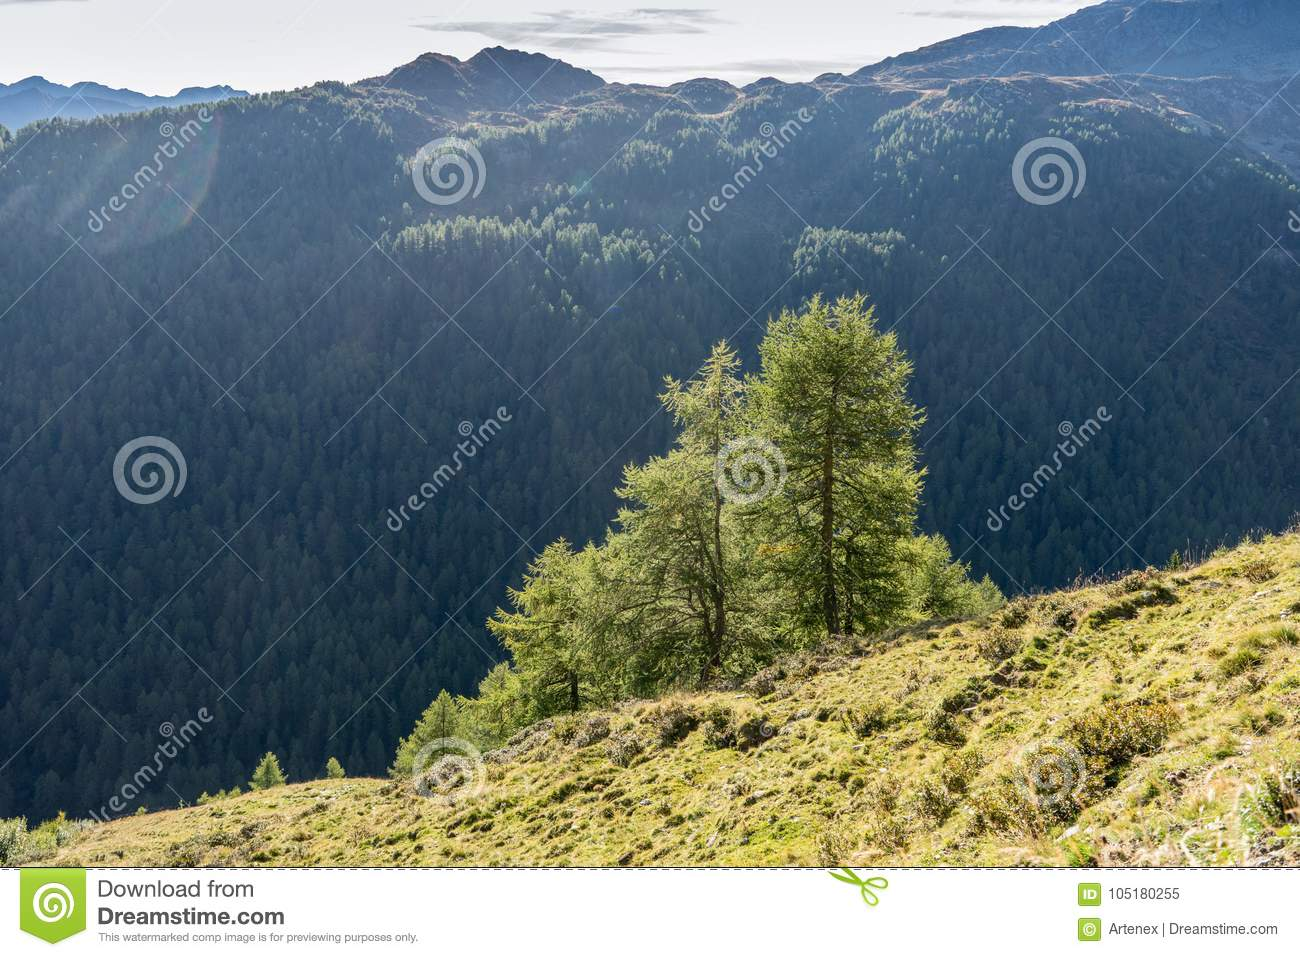 Mountains, peaks and trees landscape, natural environment. Timmelsjoch High Alpine Road